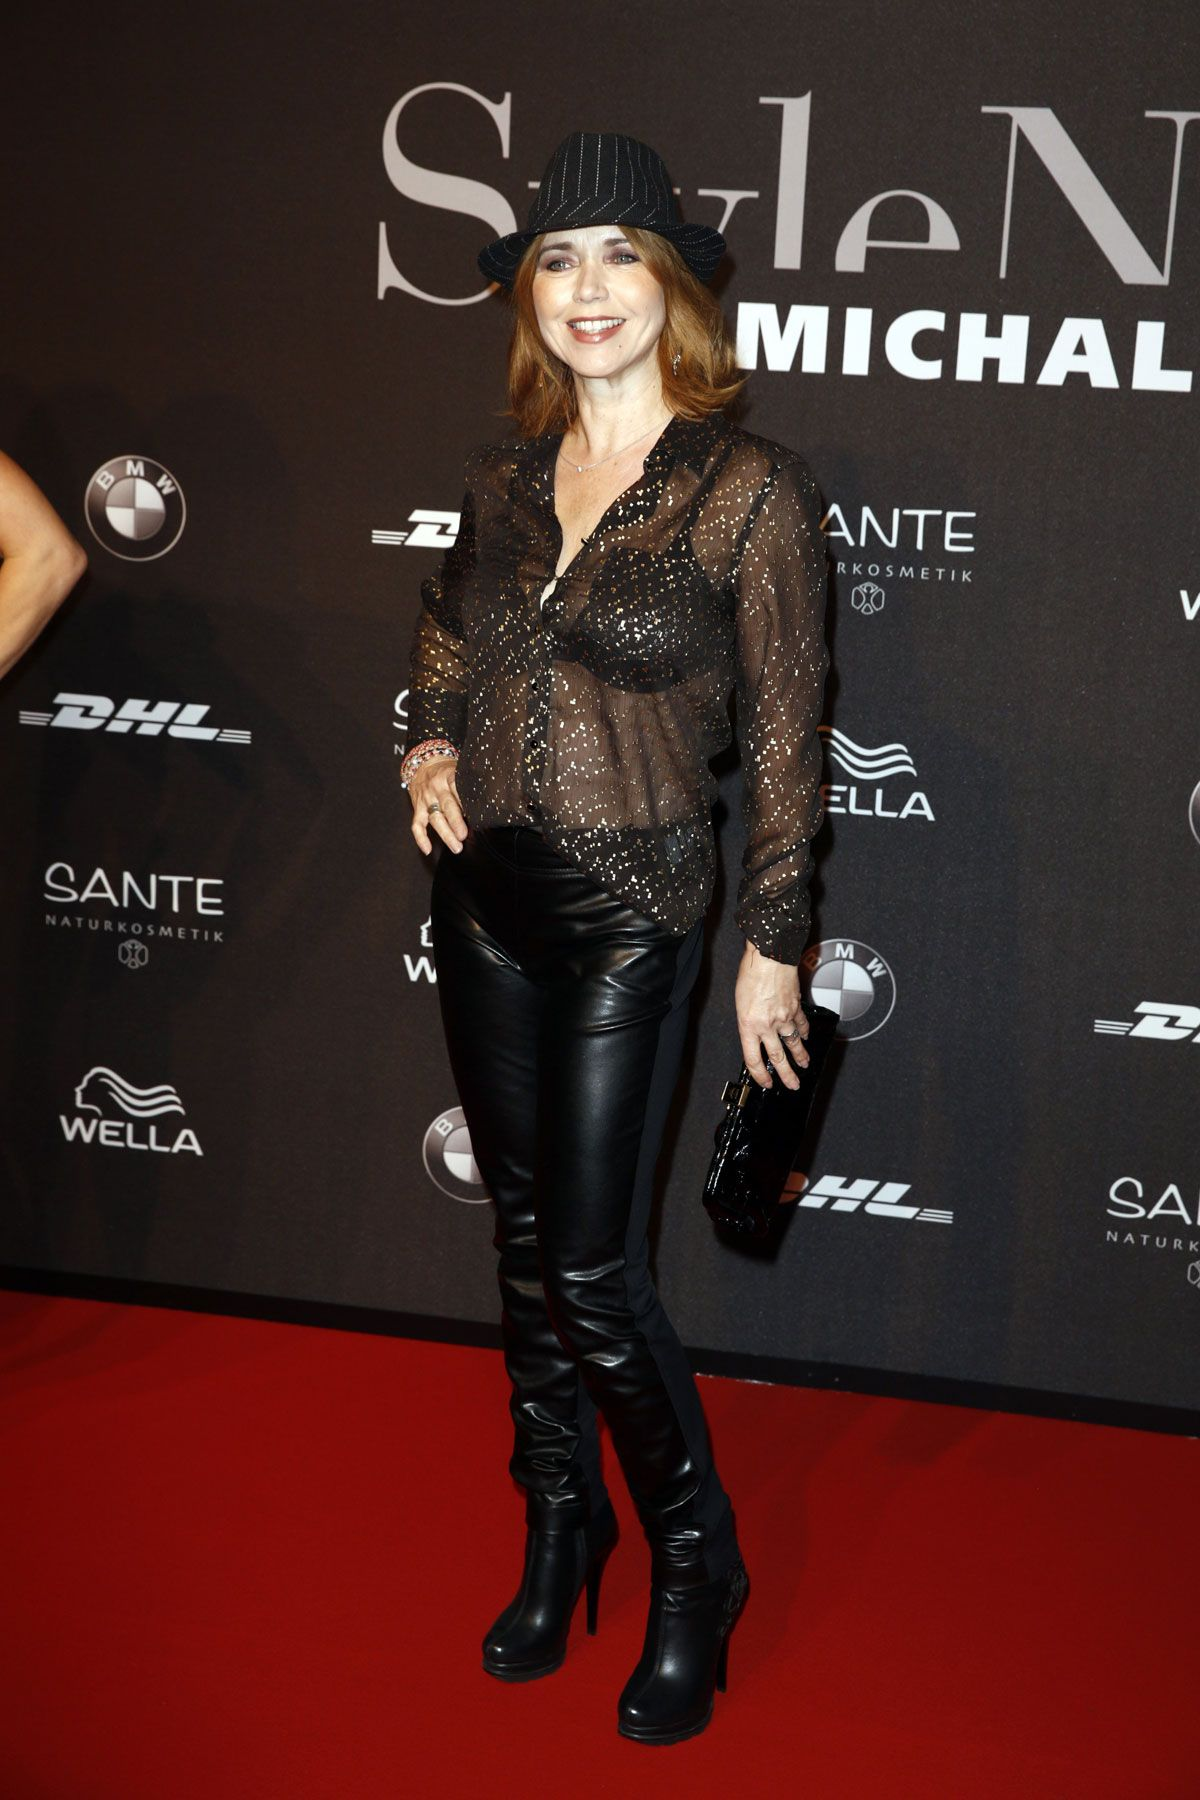 Tina ruland at mercedes benz fashion week in berlin celebzz for Mercedes benz fashion